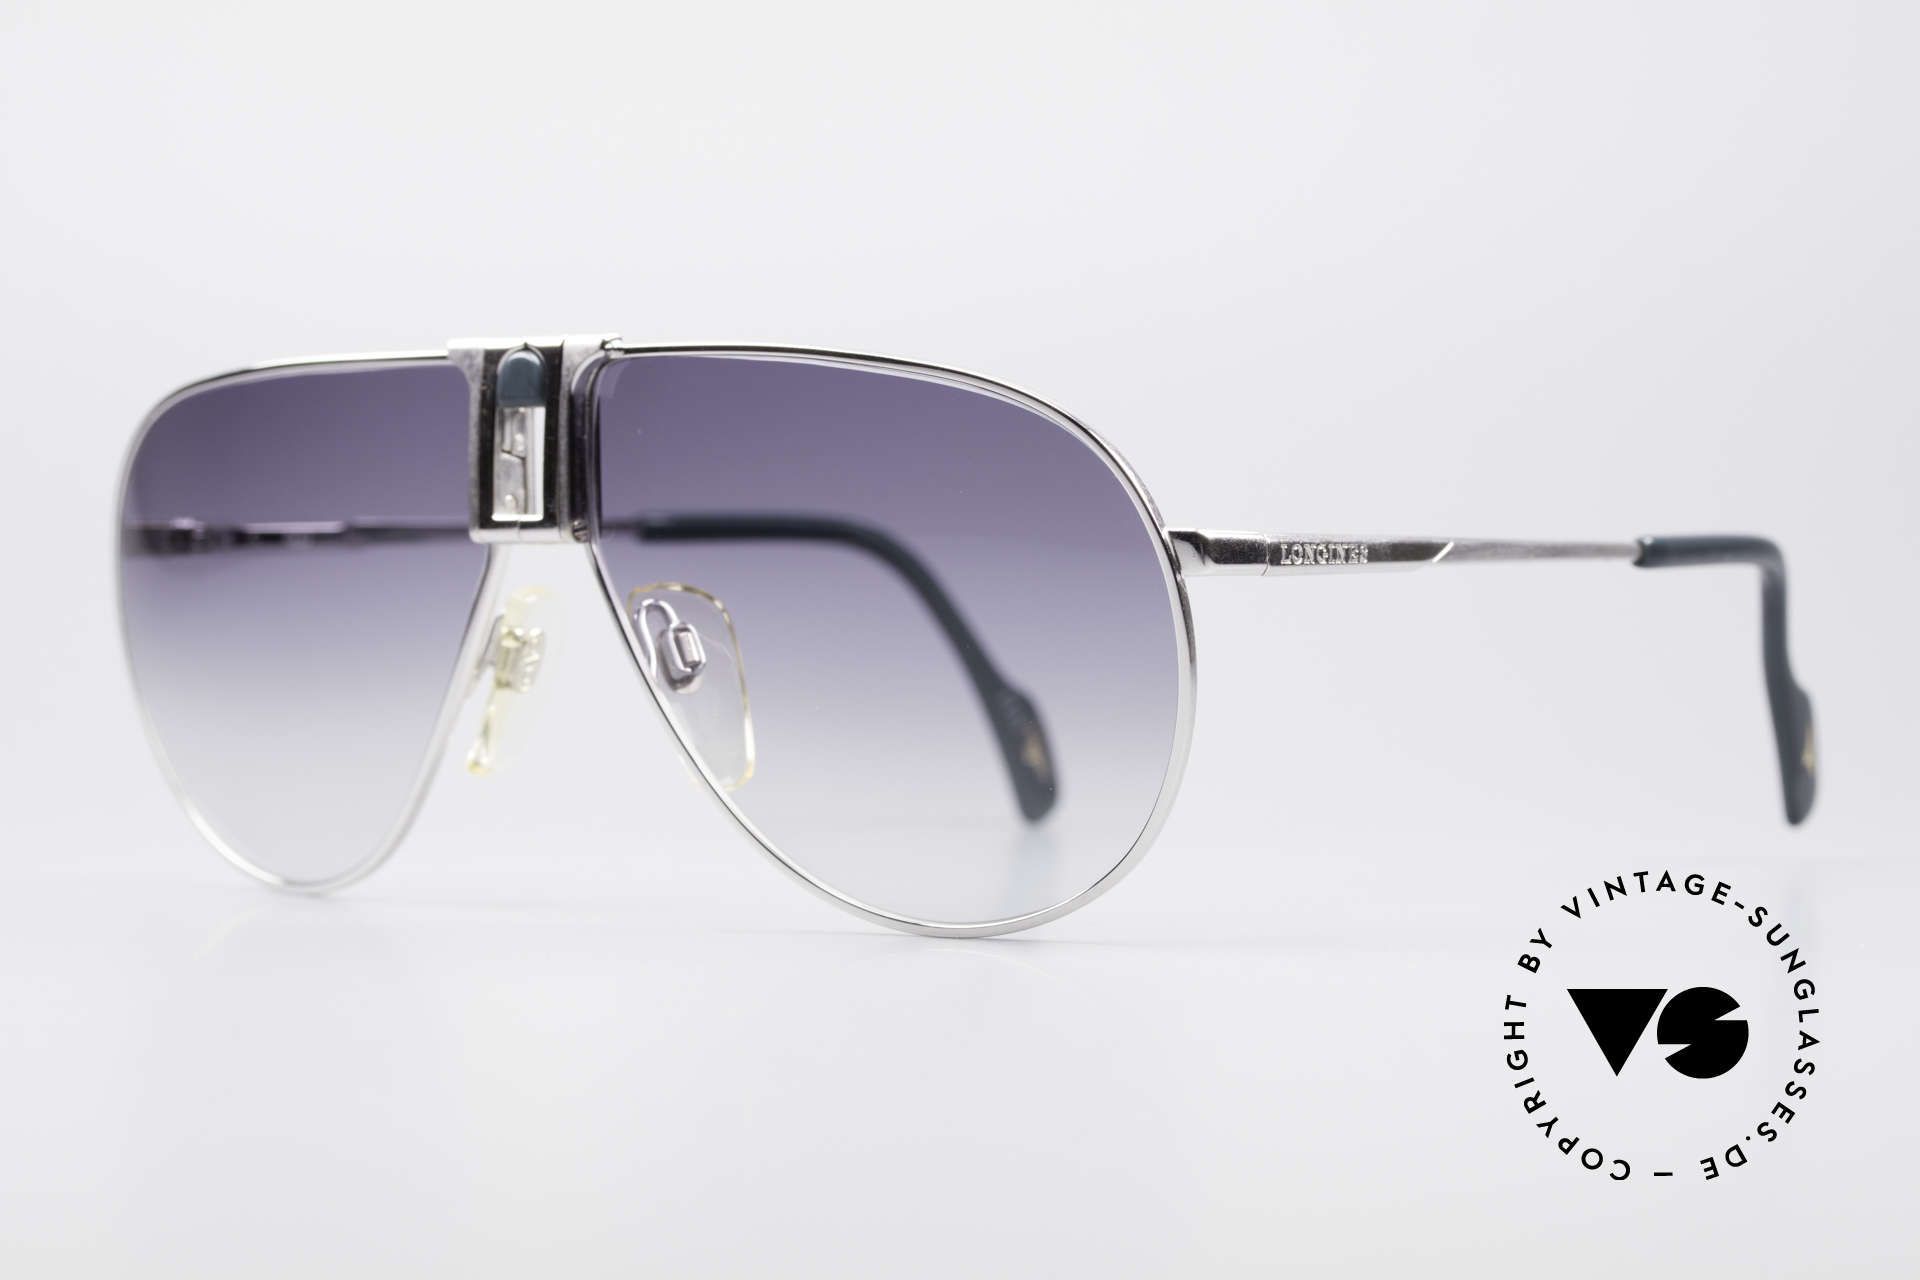 Longines 0154 Large 80's Aviator Sunglasses, Large size 138mm width: with leather case by GENTA, Made for Men